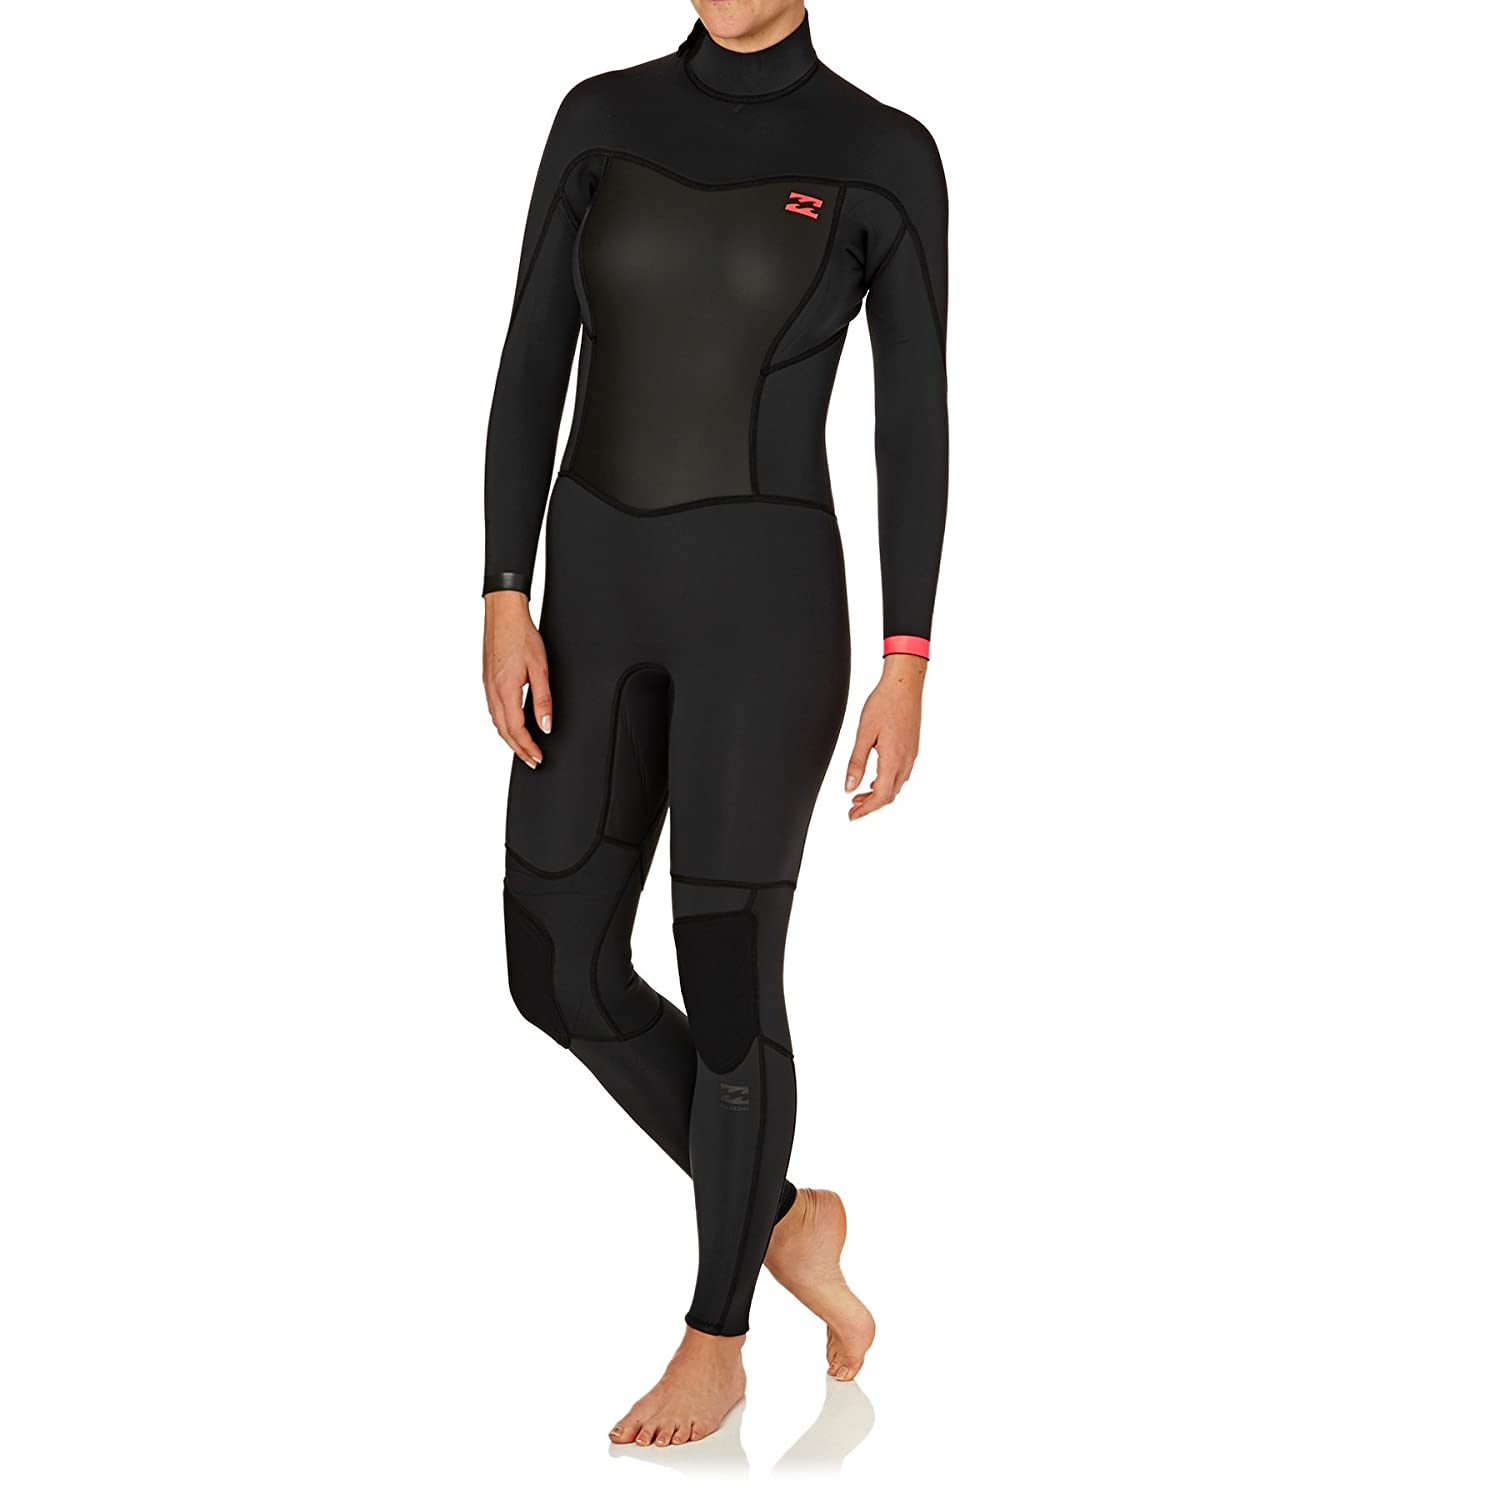 d78470a4fe BILLABONG Ladies Synergy 3 2mm Back Zip Flatlock Wetsuit in Black Sands  C43G01  Amazon.co.uk  Sports   Outdoors